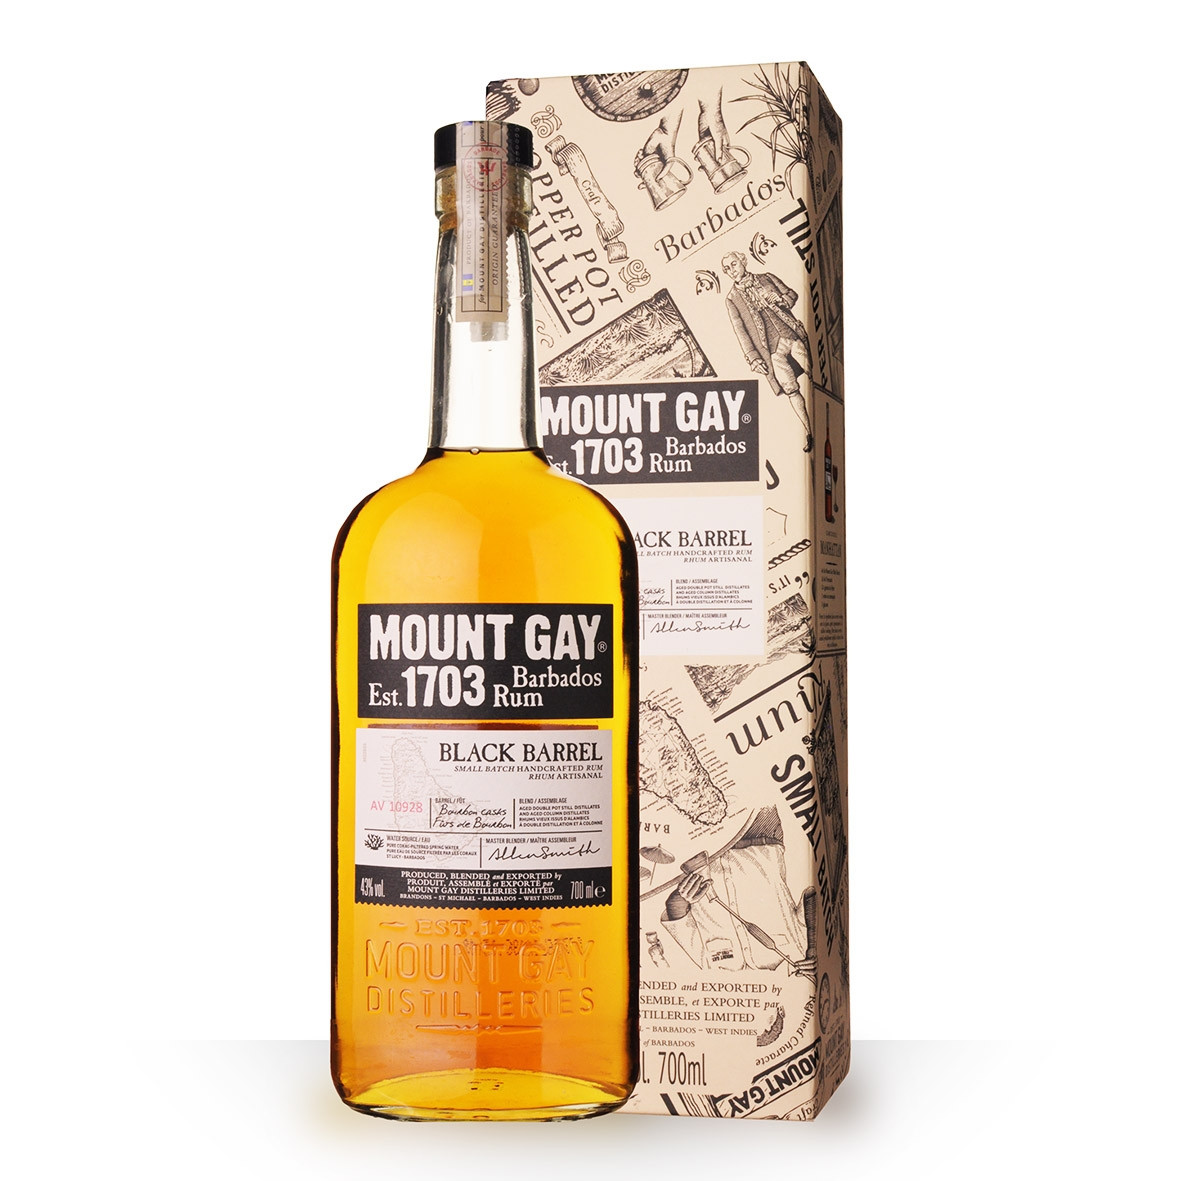 Rhum Rum Barbados Mount Gay Black Barrel 70cl Coffret www.odyssee-vins.com